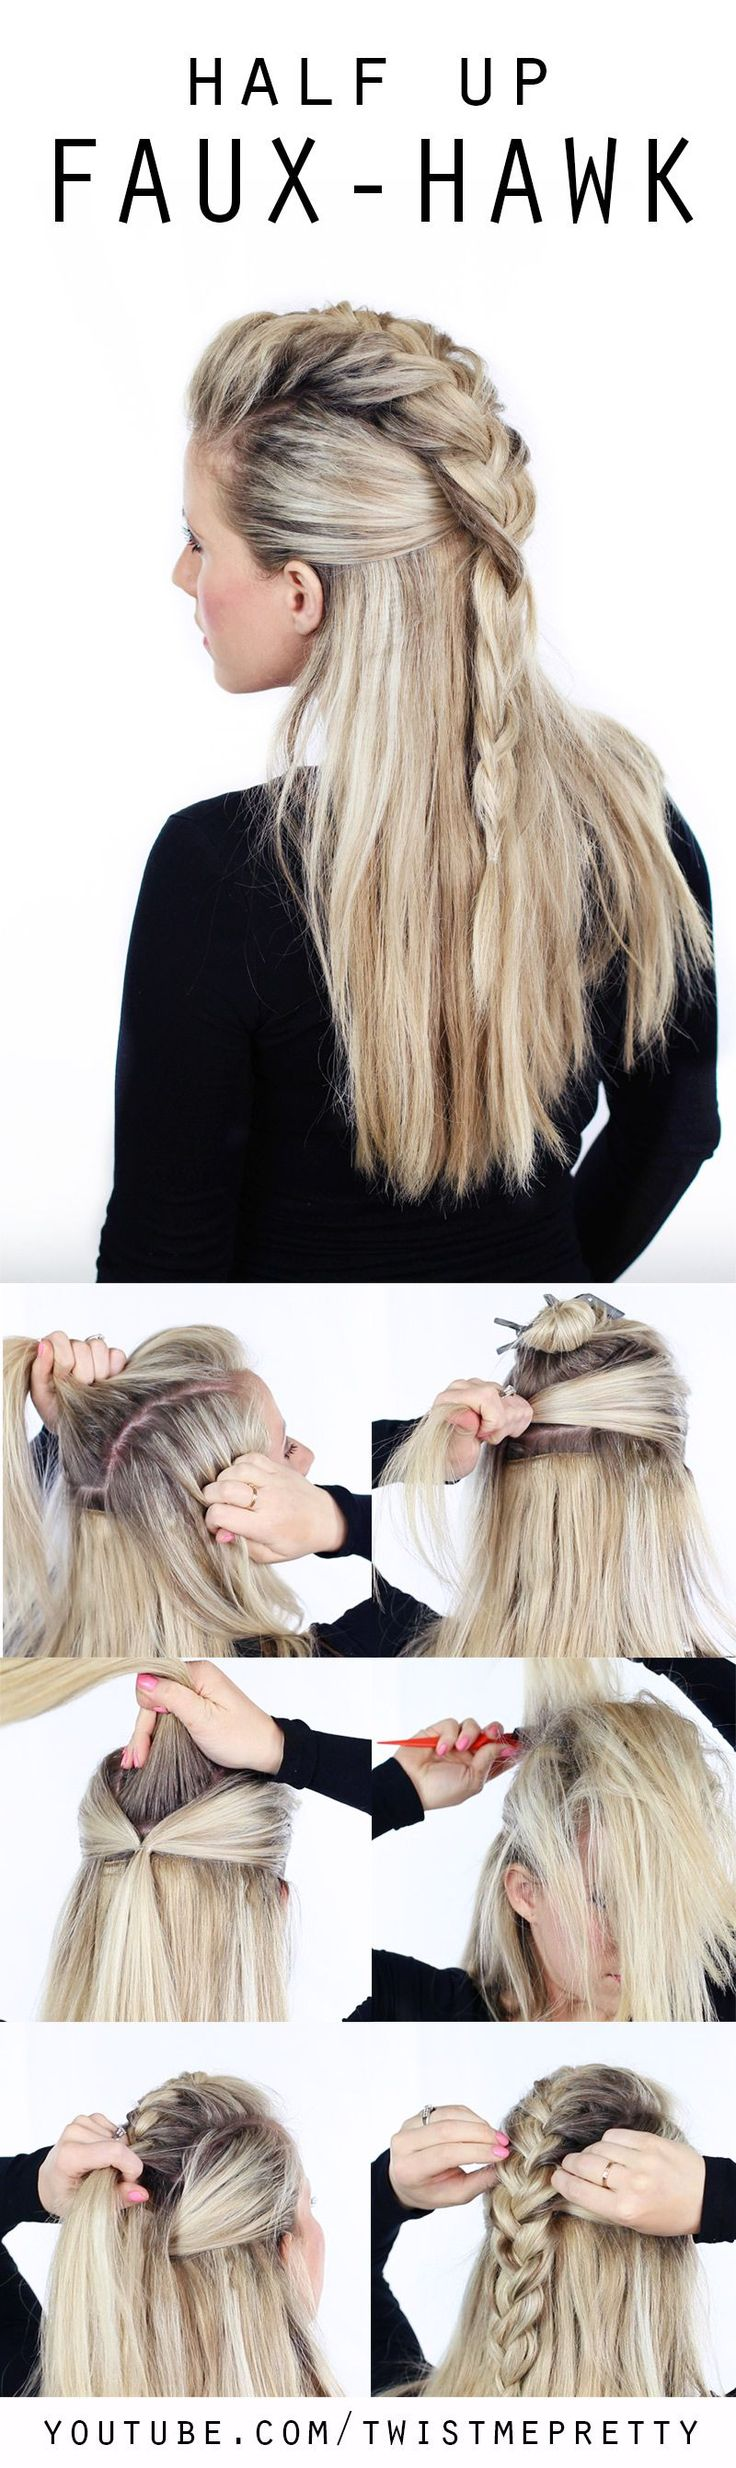 A super quick and edgy hairstyle, come checkout the tutorial at Twist Me Pretty!: